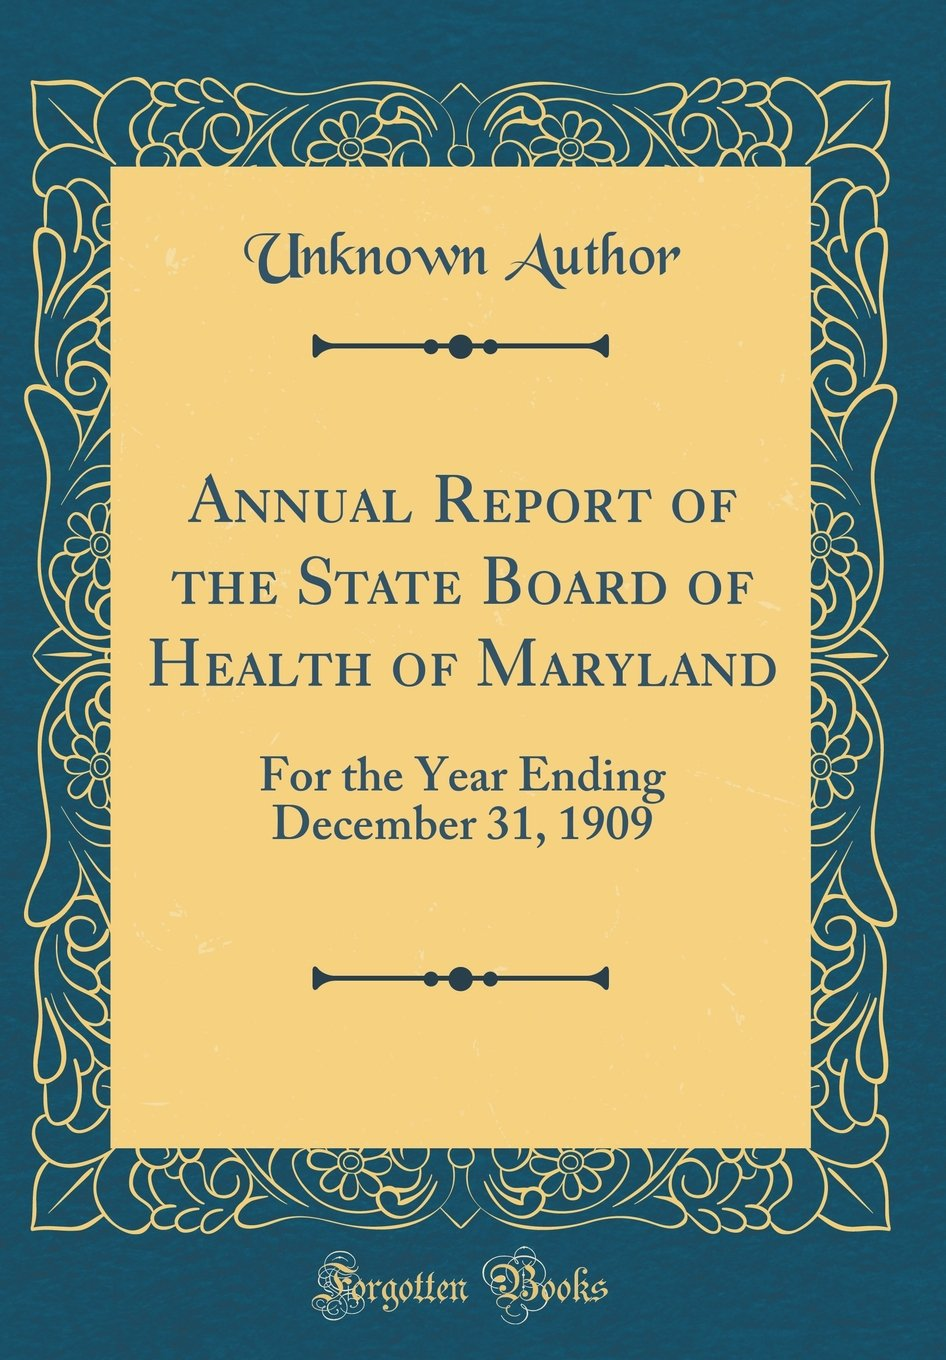 Annual Report of the State Board of Health of Maryland: For the Year Ending December 31, 1909 (Classic Reprint) PDF